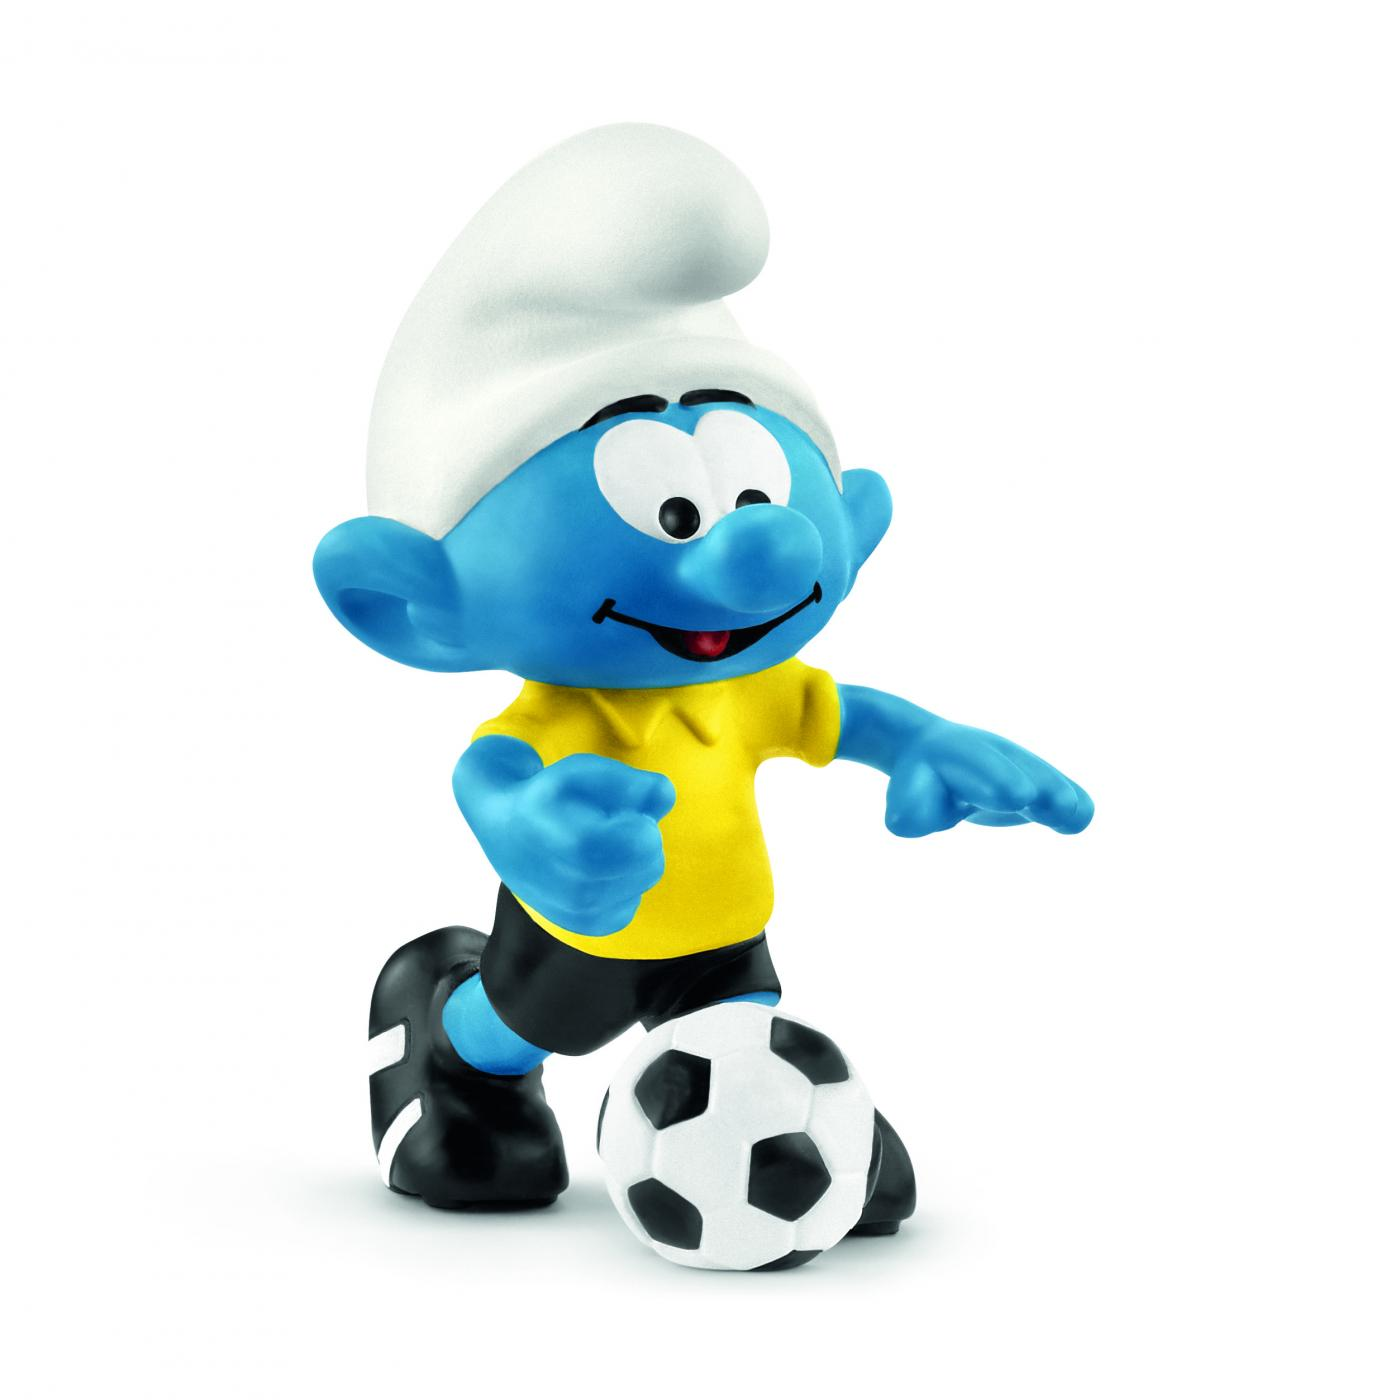 20807 SMURF WITH TROPHY FOOTBALL SMURF NEW FOR 2018 by SCHLEICH THE SMURFS